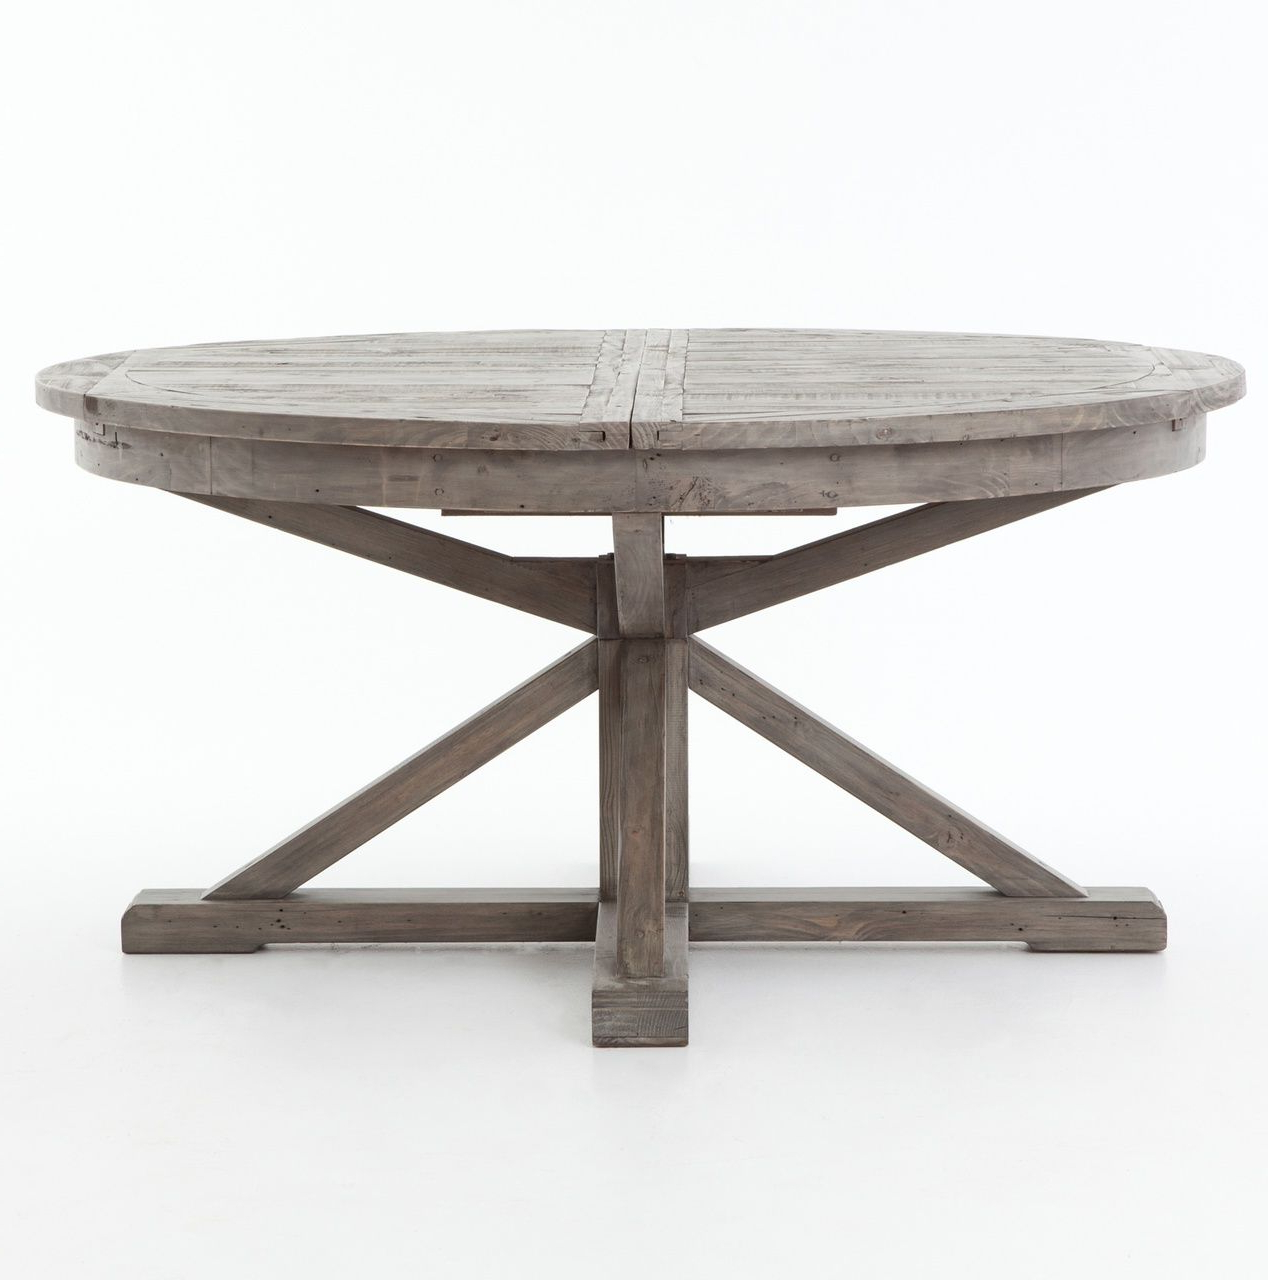 "2020 Benchwright Round Pedestal Dining Tables pertaining to Cintra Reclaimed Wood Extending Round Dining Table 63"" In"